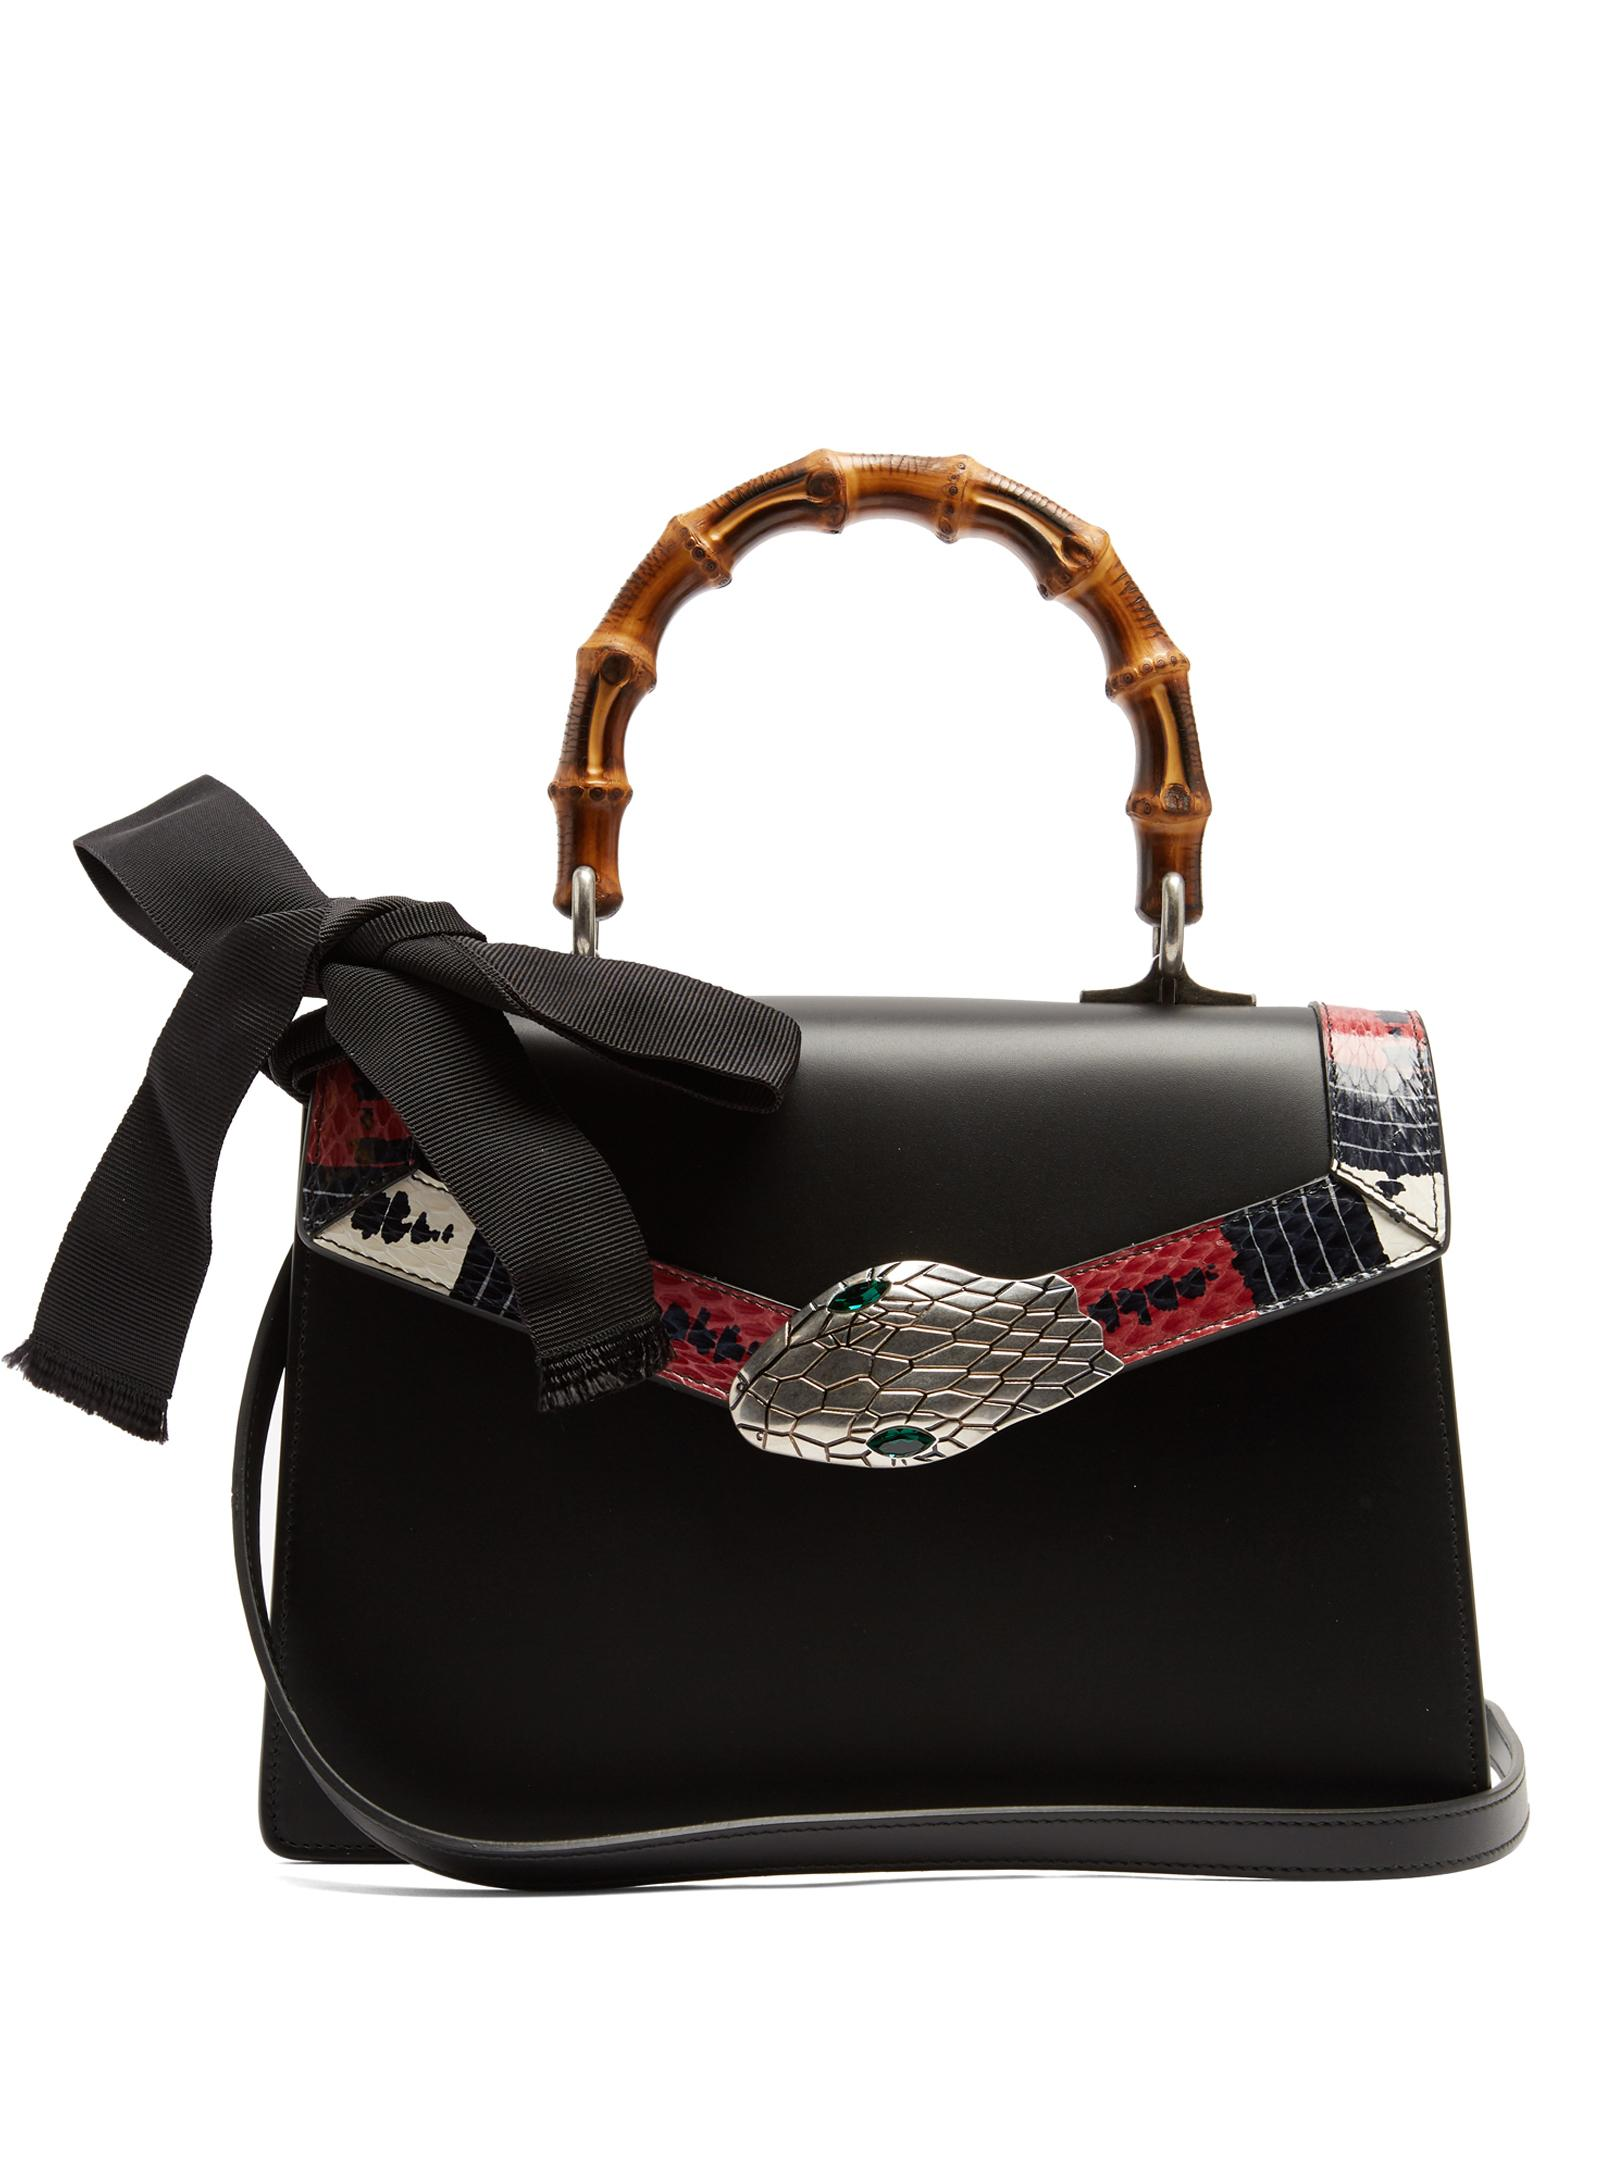 5055d4bebb2c Gucci Bamboo Handle Black Bag | Stanford Center for Opportunity ...